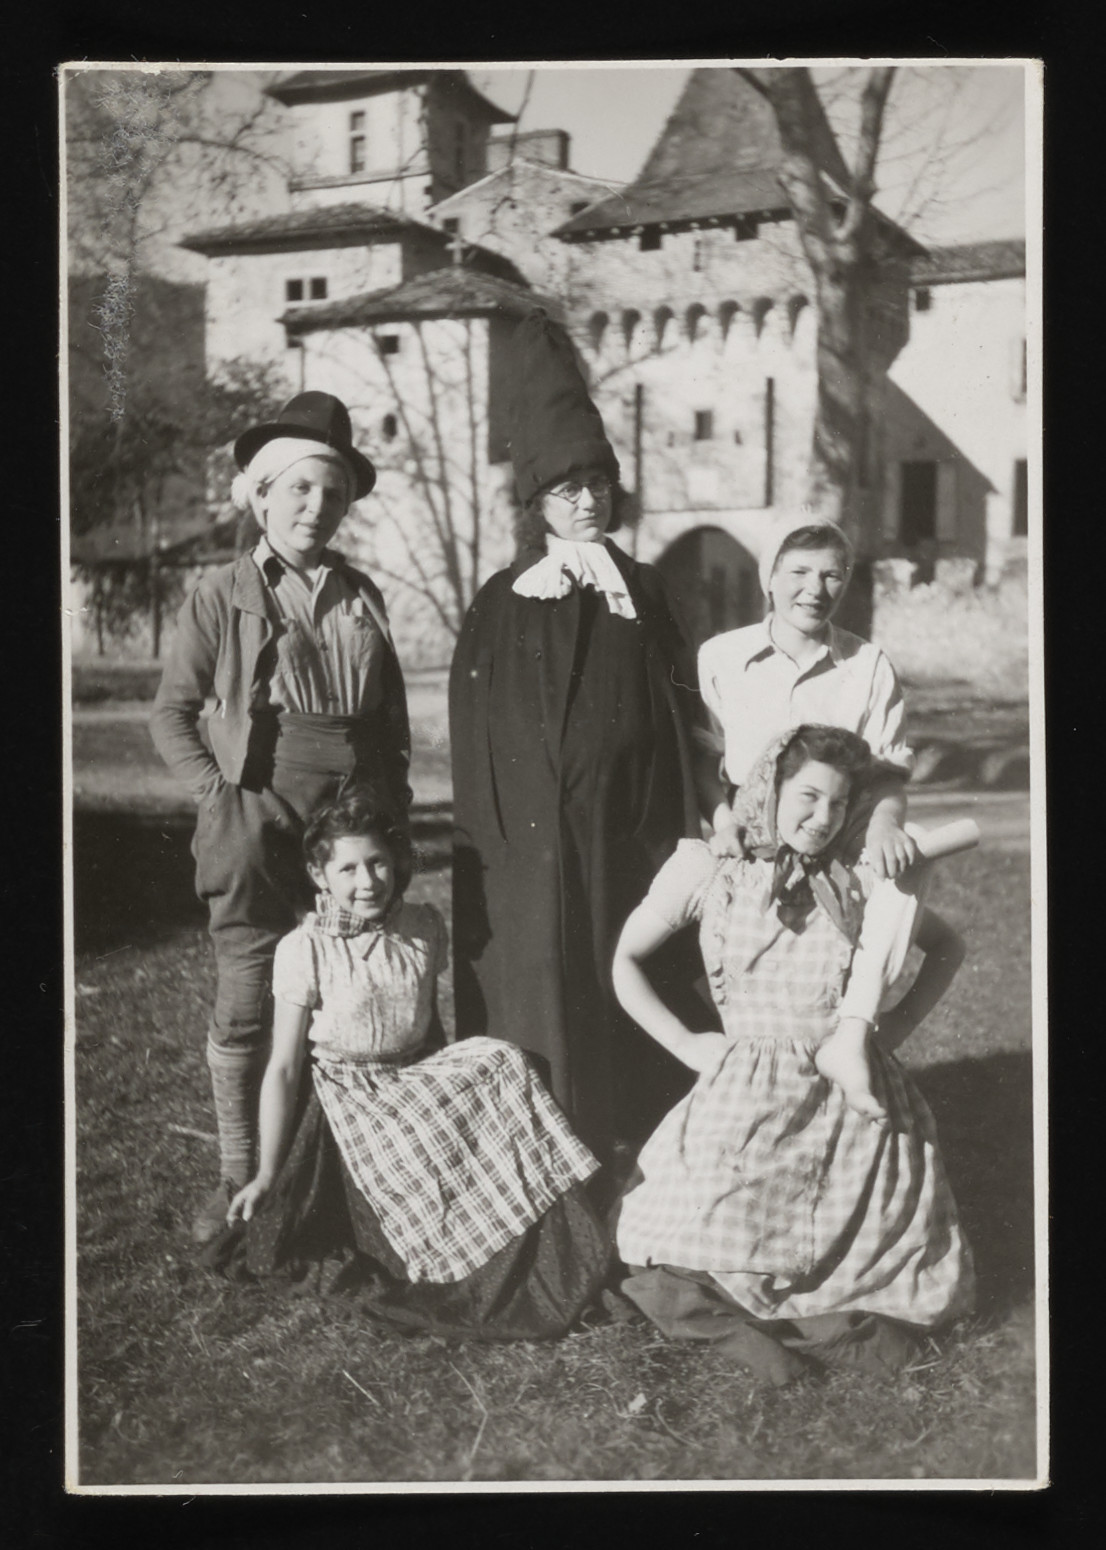 Group portrait of members of the drama club at the La Hille children's home in costume.  Pictured from left to right are front row: Eva Fenambuk and Ruth Backenheimer. Back row: Guita Kokotek, Irene Kokotek and Cilly Stueckler.